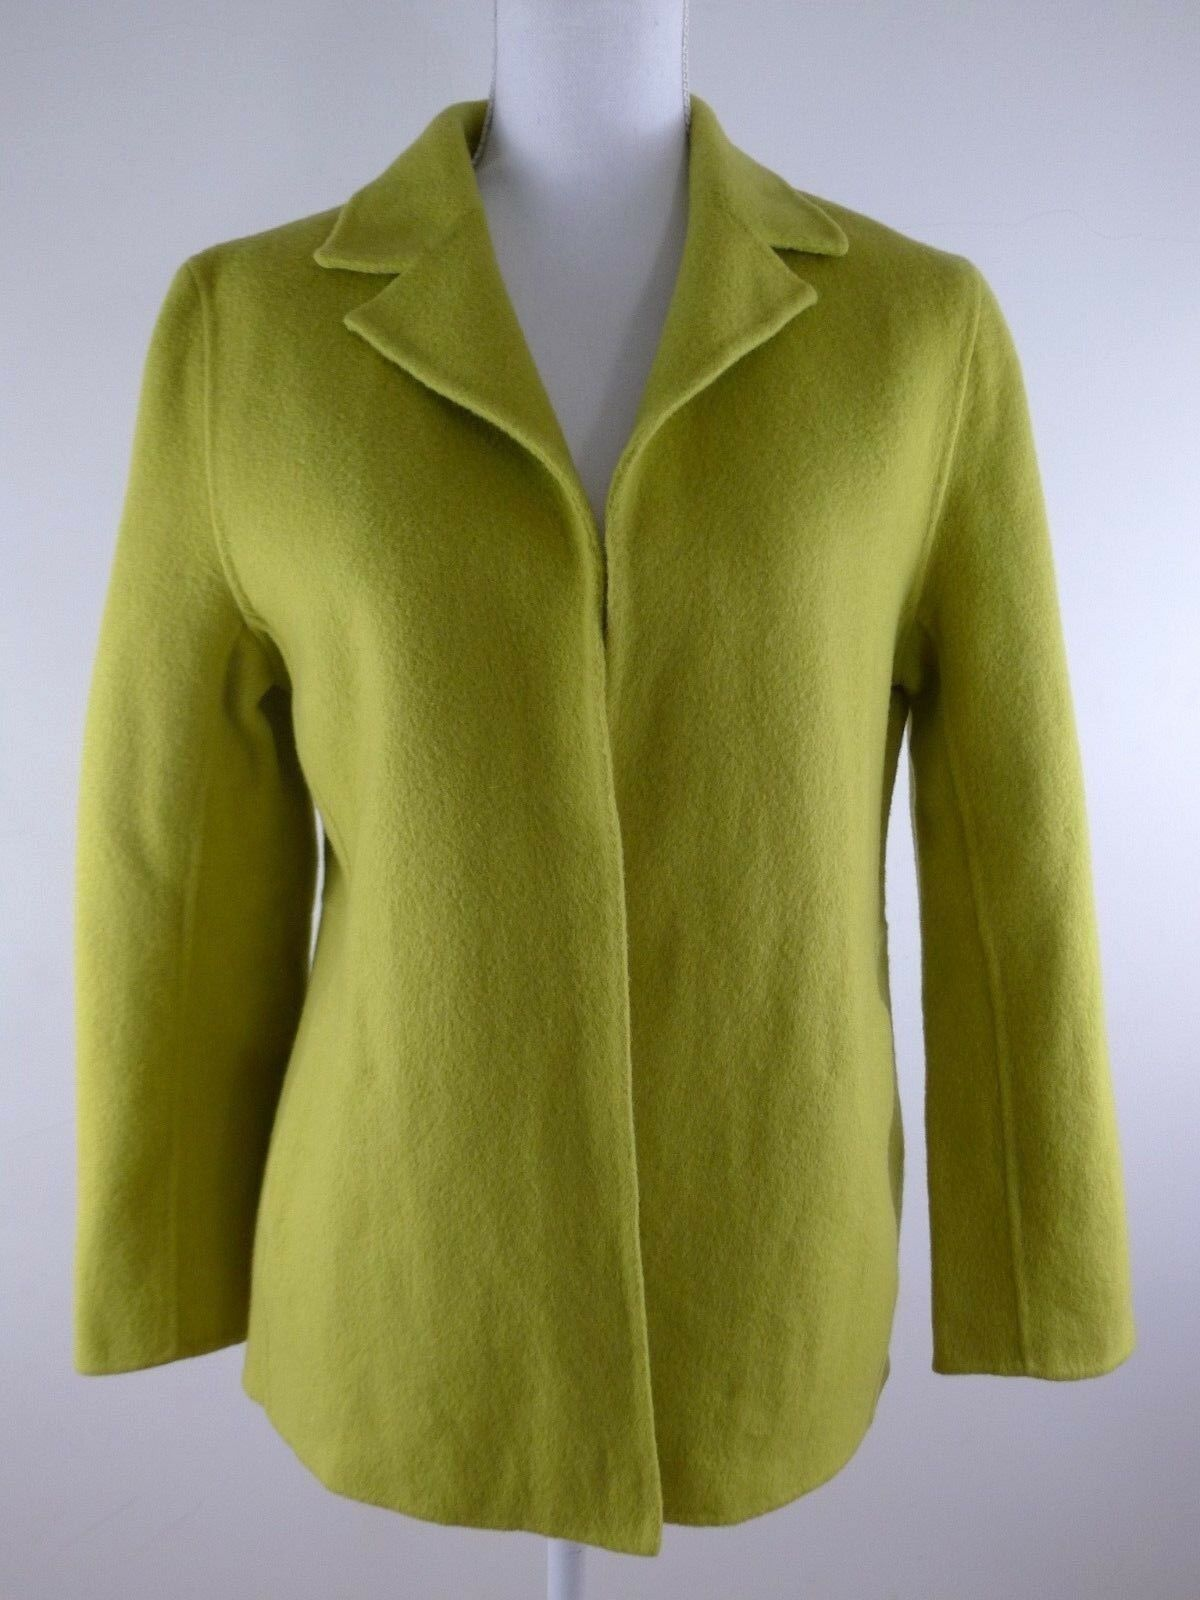 Bloomingdales NOW Women's Yellow Wool Coat, Size 8 P